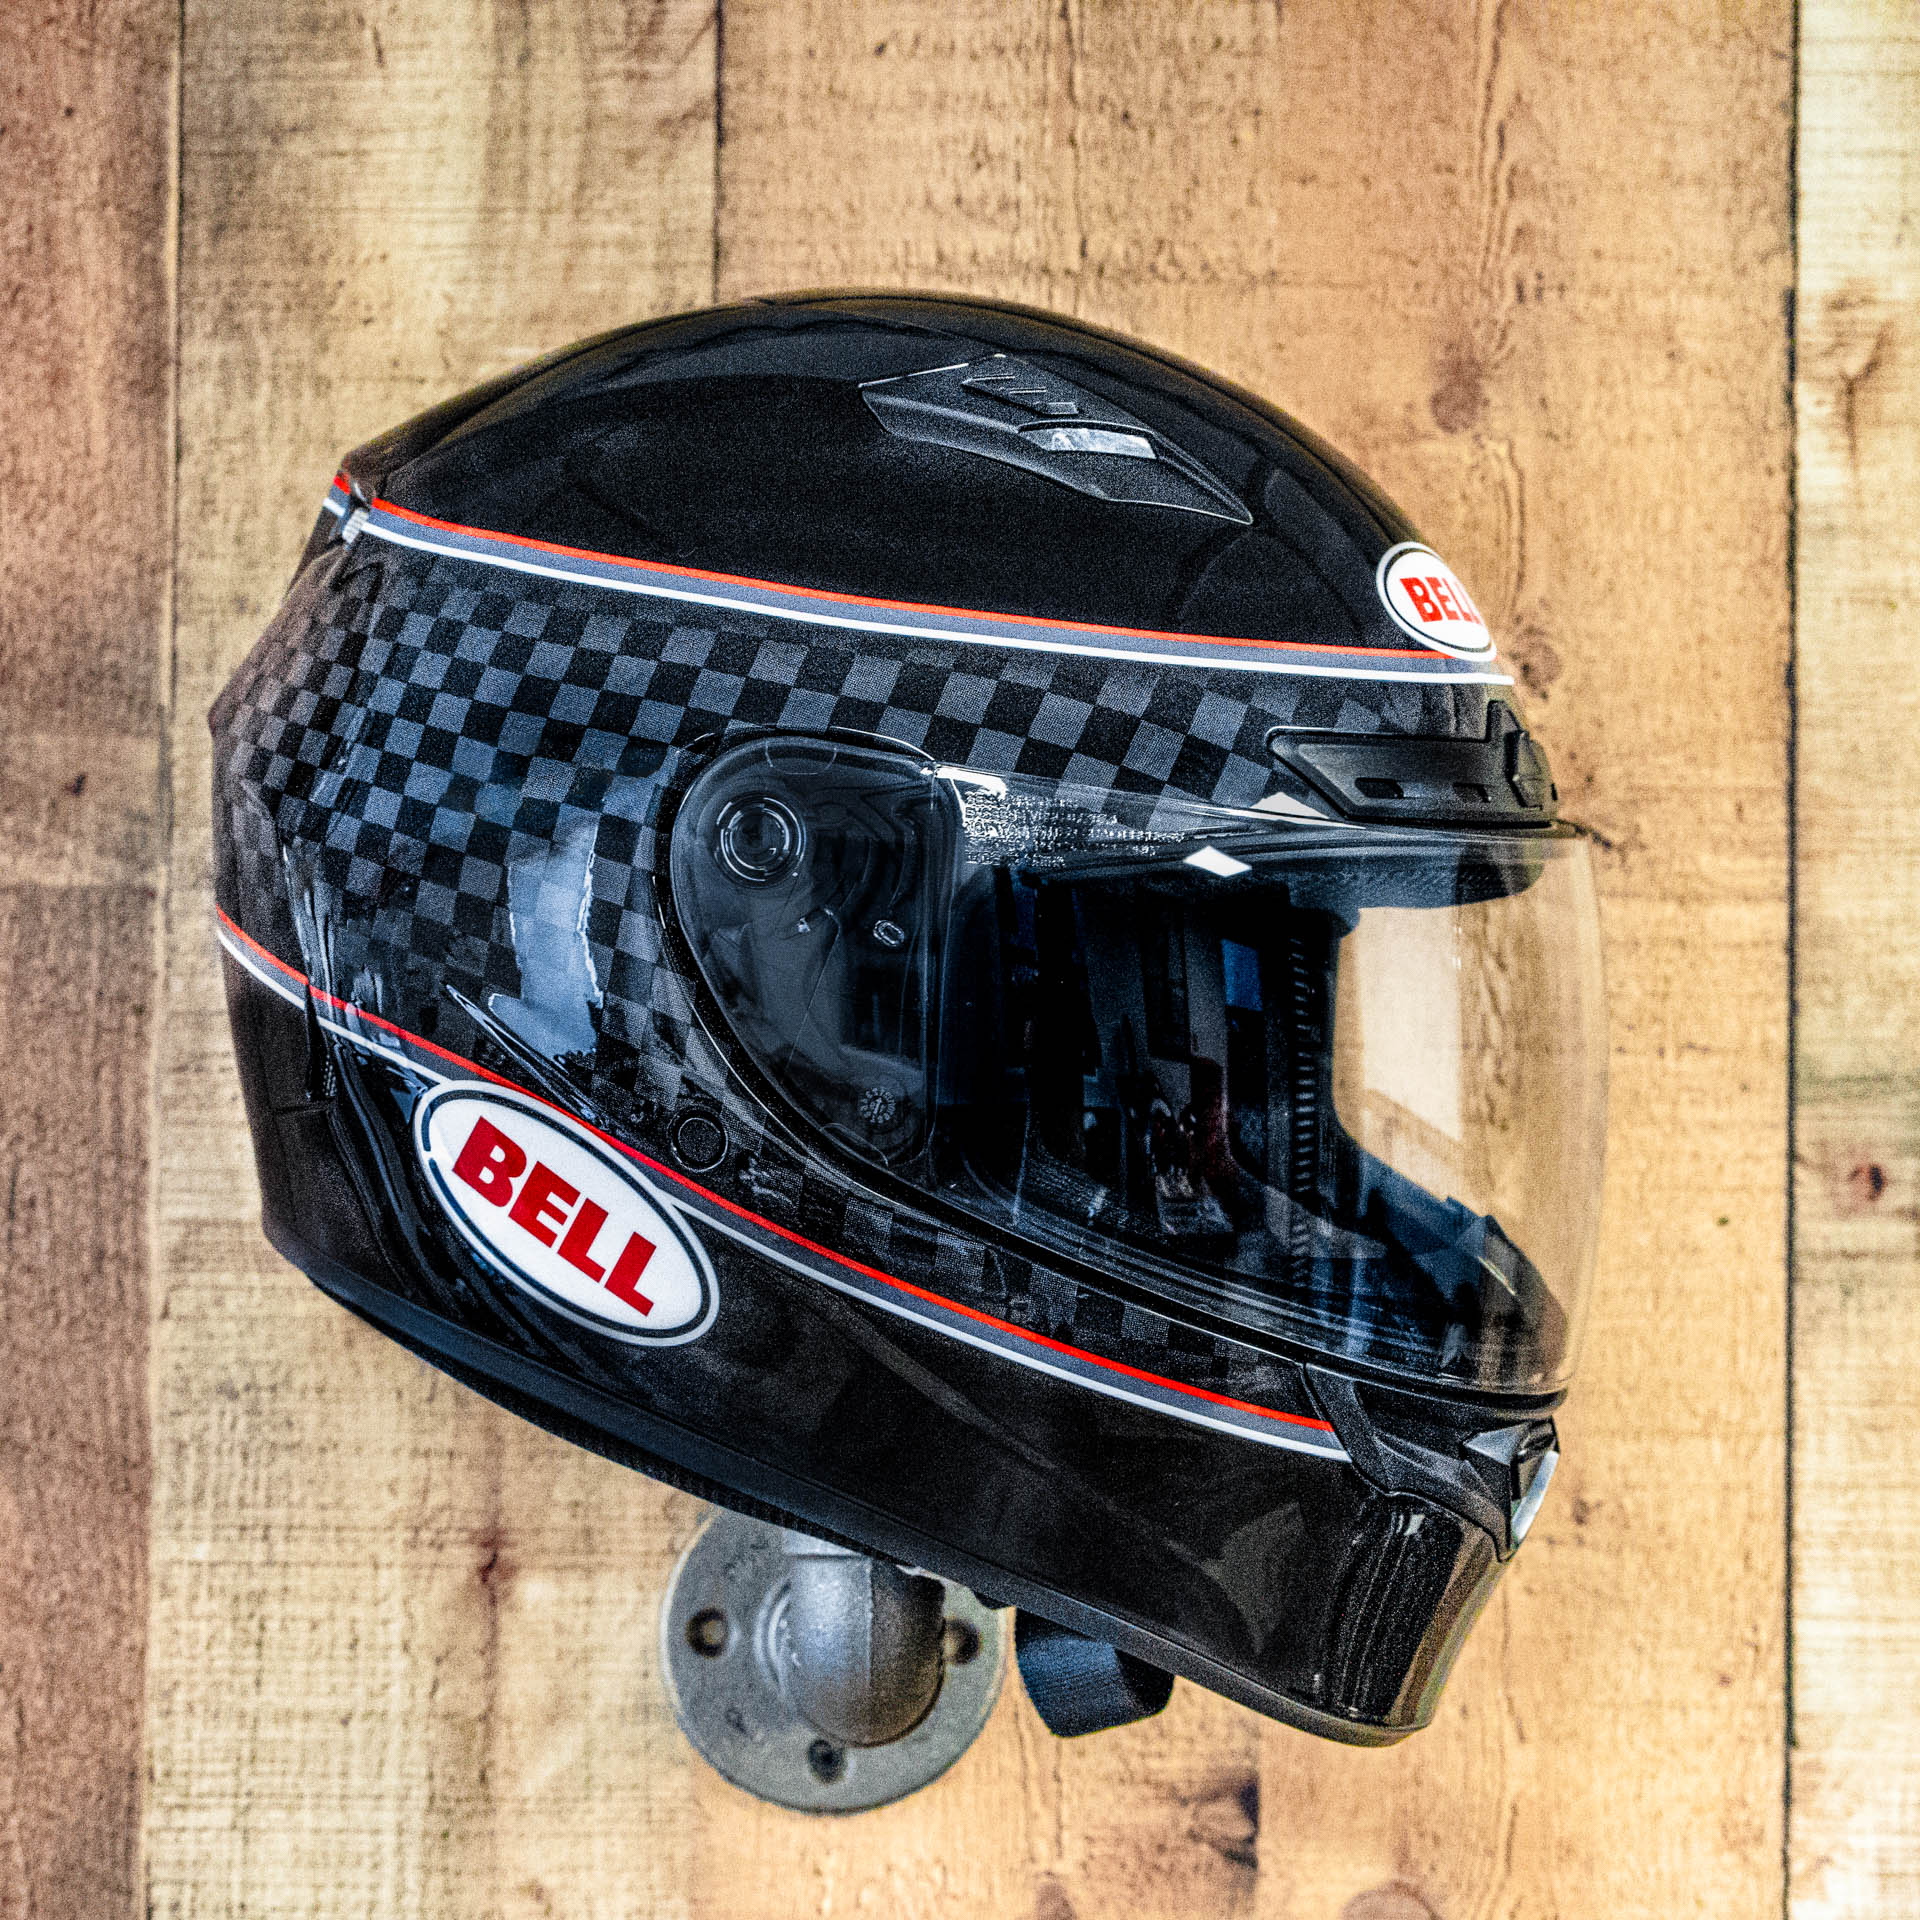 Bell Qualifier DLX MIPS Helmet - Breadwinner Gloss Black/White